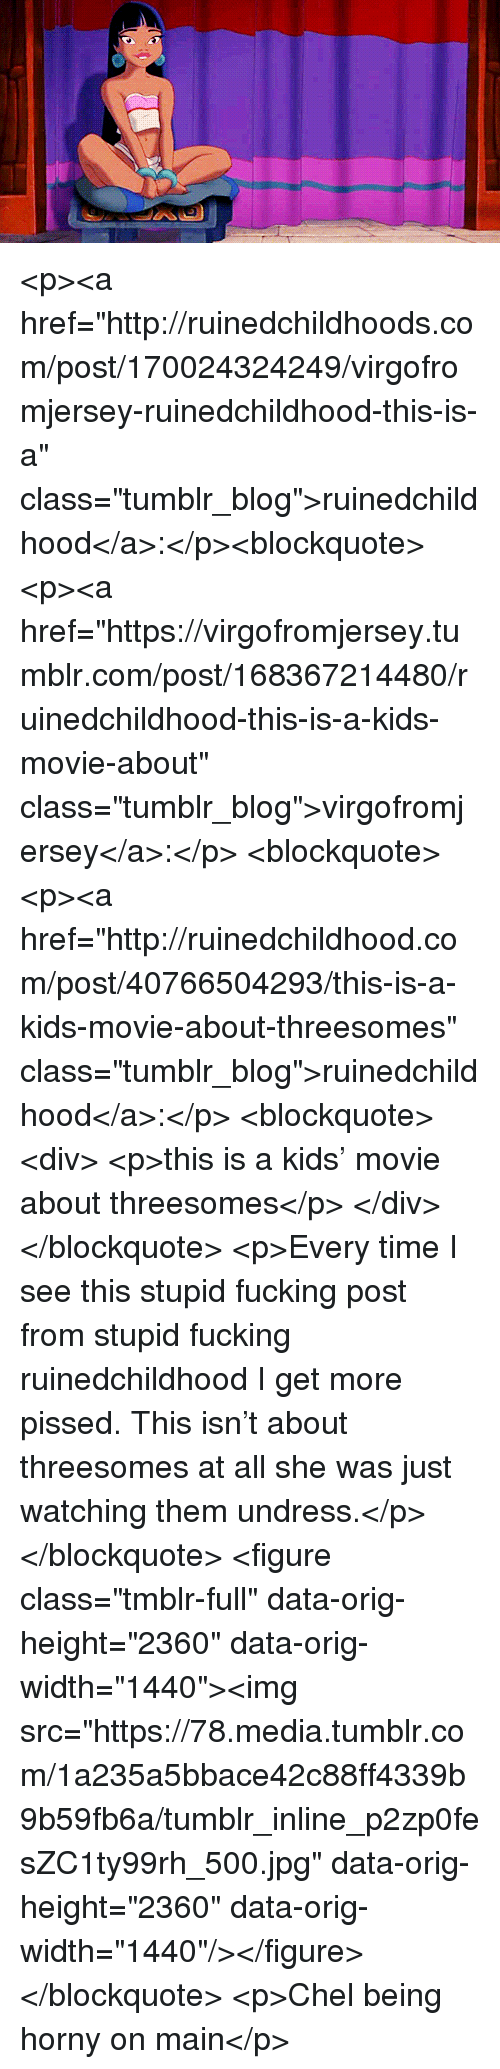 "Fucking, Horny, and Tumblr: <p><a href=""http://ruinedchildhoods.com/post/170024324249/virgofromjersey-ruinedchildhood-this-is-a"" class=""tumblr_blog"">ruinedchildhood</a>:</p><blockquote> <p><a href=""https://virgofromjersey.tumblr.com/post/168367214480/ruinedchildhood-this-is-a-kids-movie-about"" class=""tumblr_blog"">virgofromjersey</a>:</p>  <blockquote> <p><a href=""http://ruinedchildhood.com/post/40766504293/this-is-a-kids-movie-about-threesomes"" class=""tumblr_blog"">ruinedchildhood</a>:</p> <blockquote><div> <p>this is a kids' movie about threesomes</p> </div></blockquote> <p>Every time I see this stupid fucking post from stupid fucking ruinedchildhood I get more pissed. This isn't about threesomes at all she was just watching them undress.</p> </blockquote>  <figure class=""tmblr-full"" data-orig-height=""2360"" data-orig-width=""1440""><img src=""https://78.media.tumblr.com/1a235a5bbace42c88ff4339b9b59fb6a/tumblr_inline_p2zp0fesZC1ty99rh_500.jpg"" data-orig-height=""2360"" data-orig-width=""1440""/></figure></blockquote>  <p>Chel being horny on main</p>"